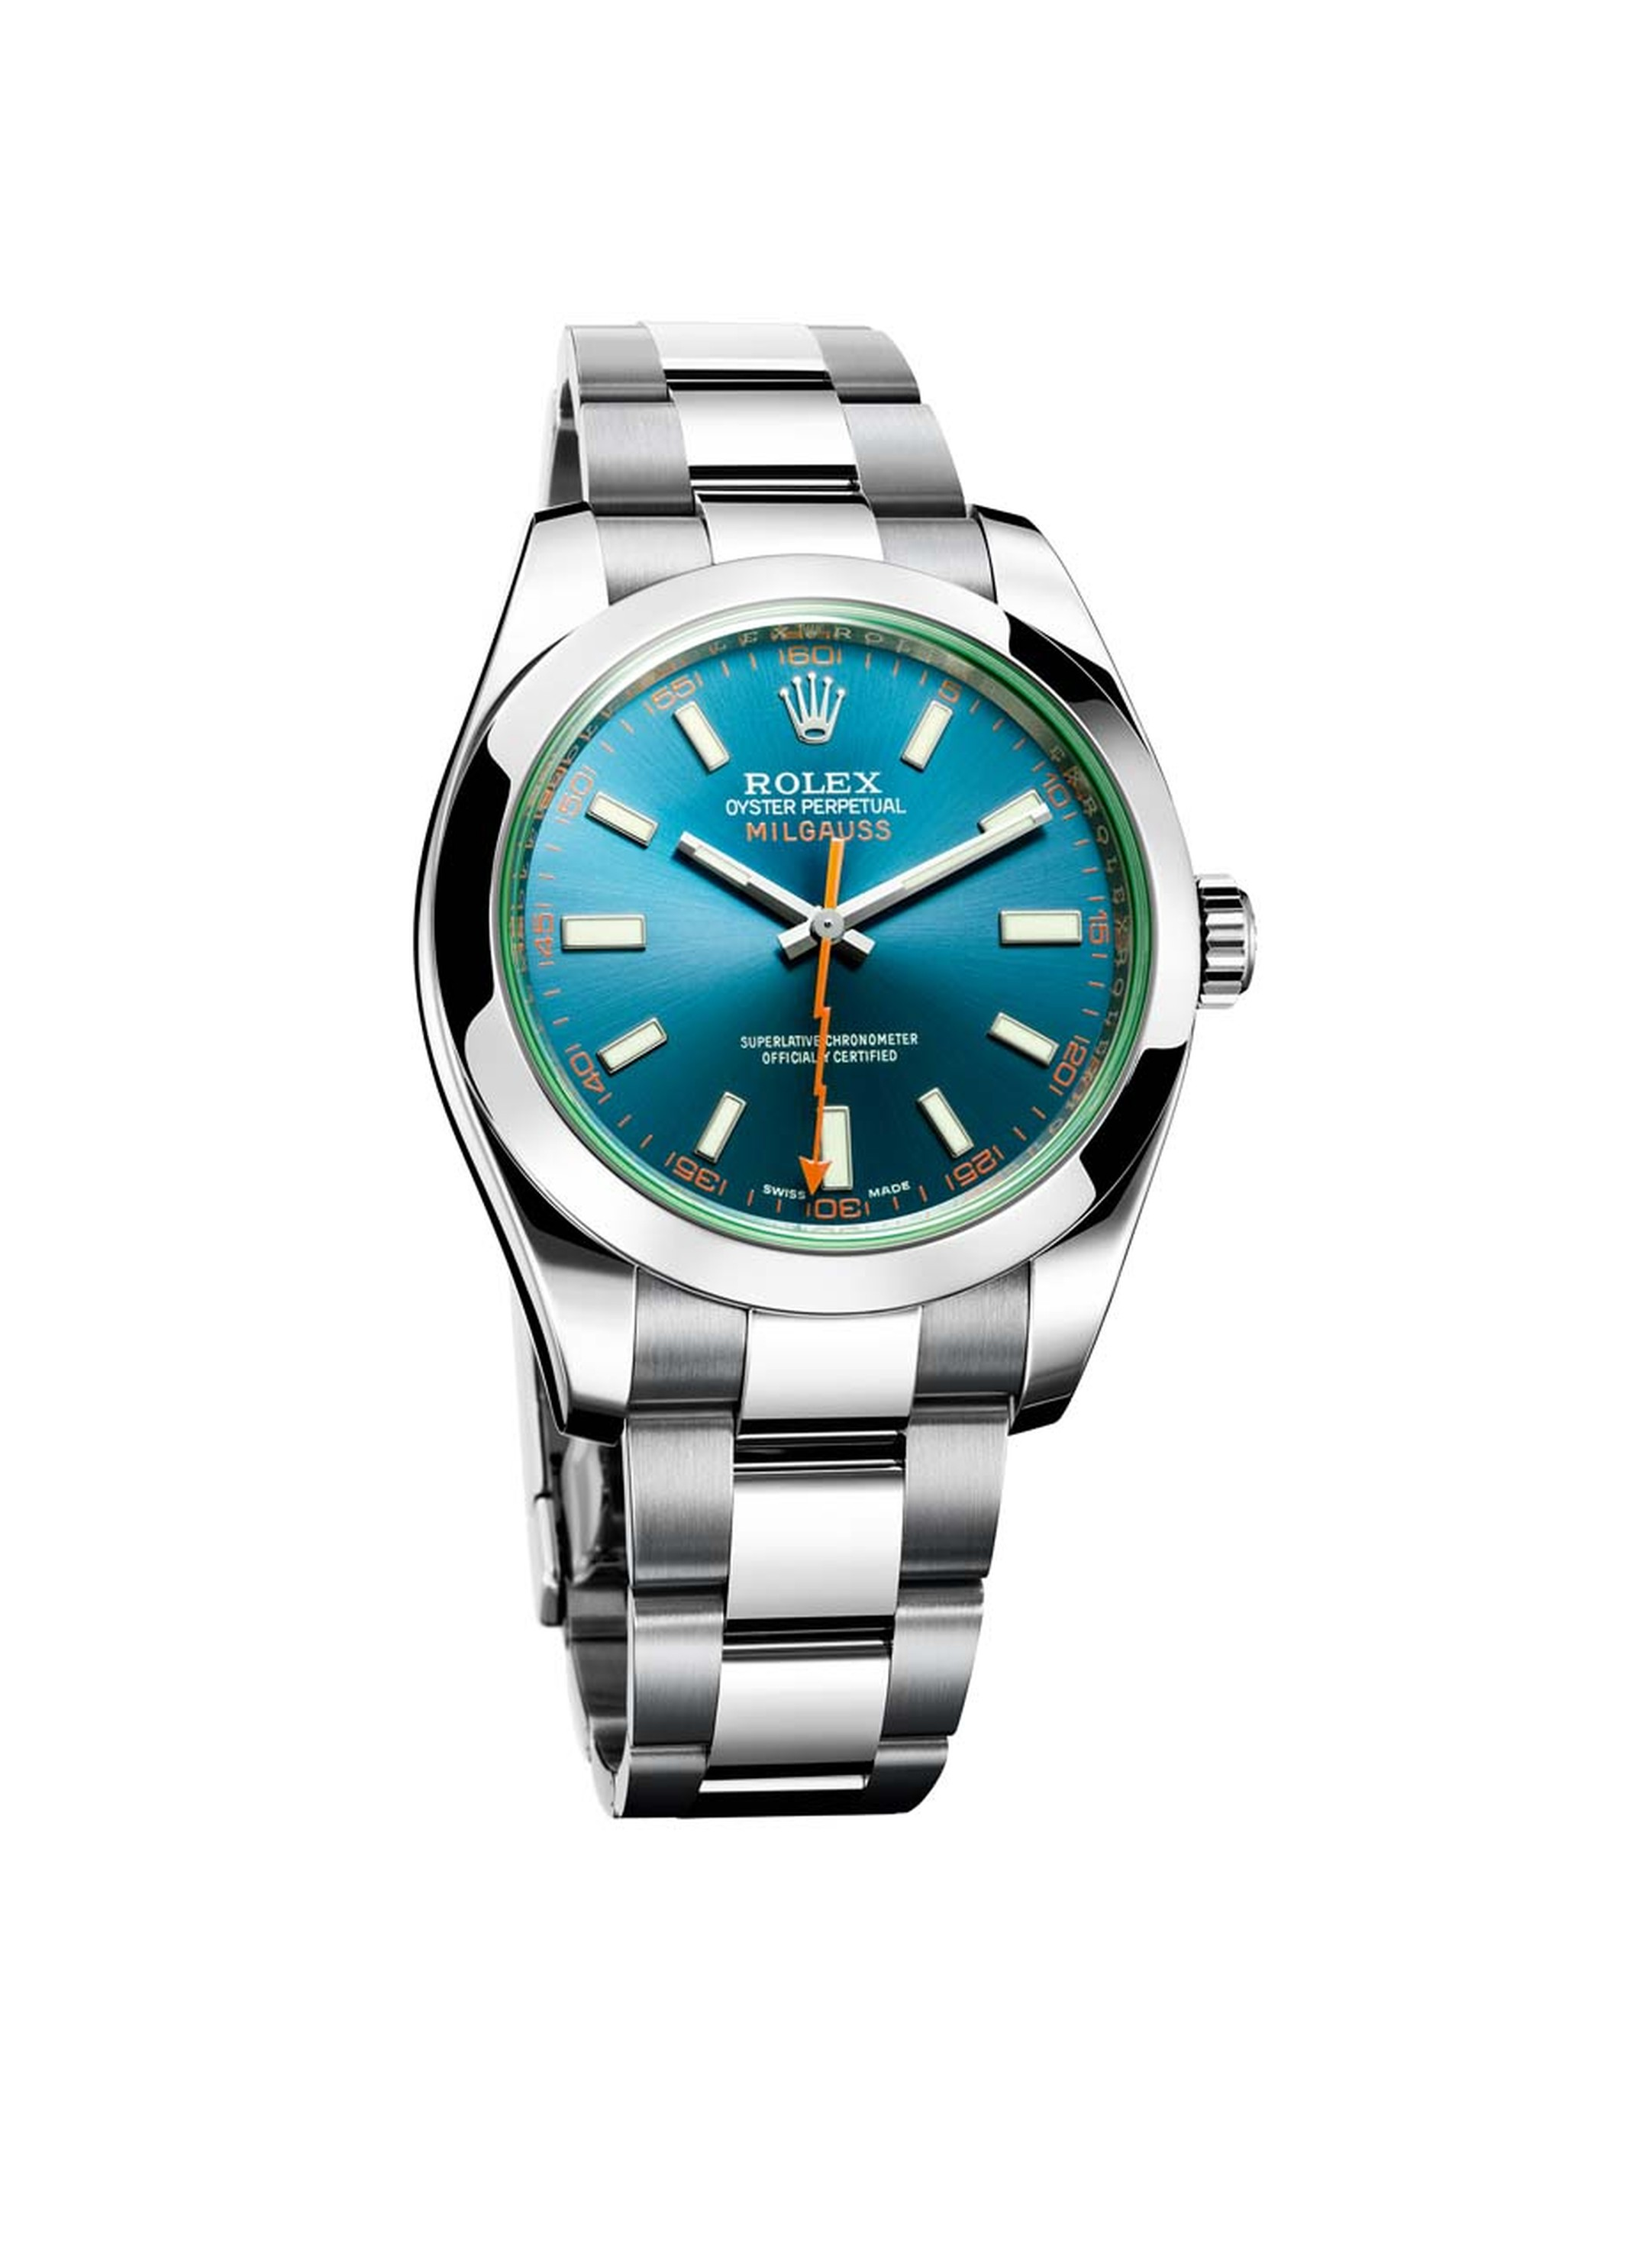 Launched in 2014, the new Rolex Milgauss Z-blue watch has a deep turquoise sunburst dial and trademark glace verte green sapphire crystal.